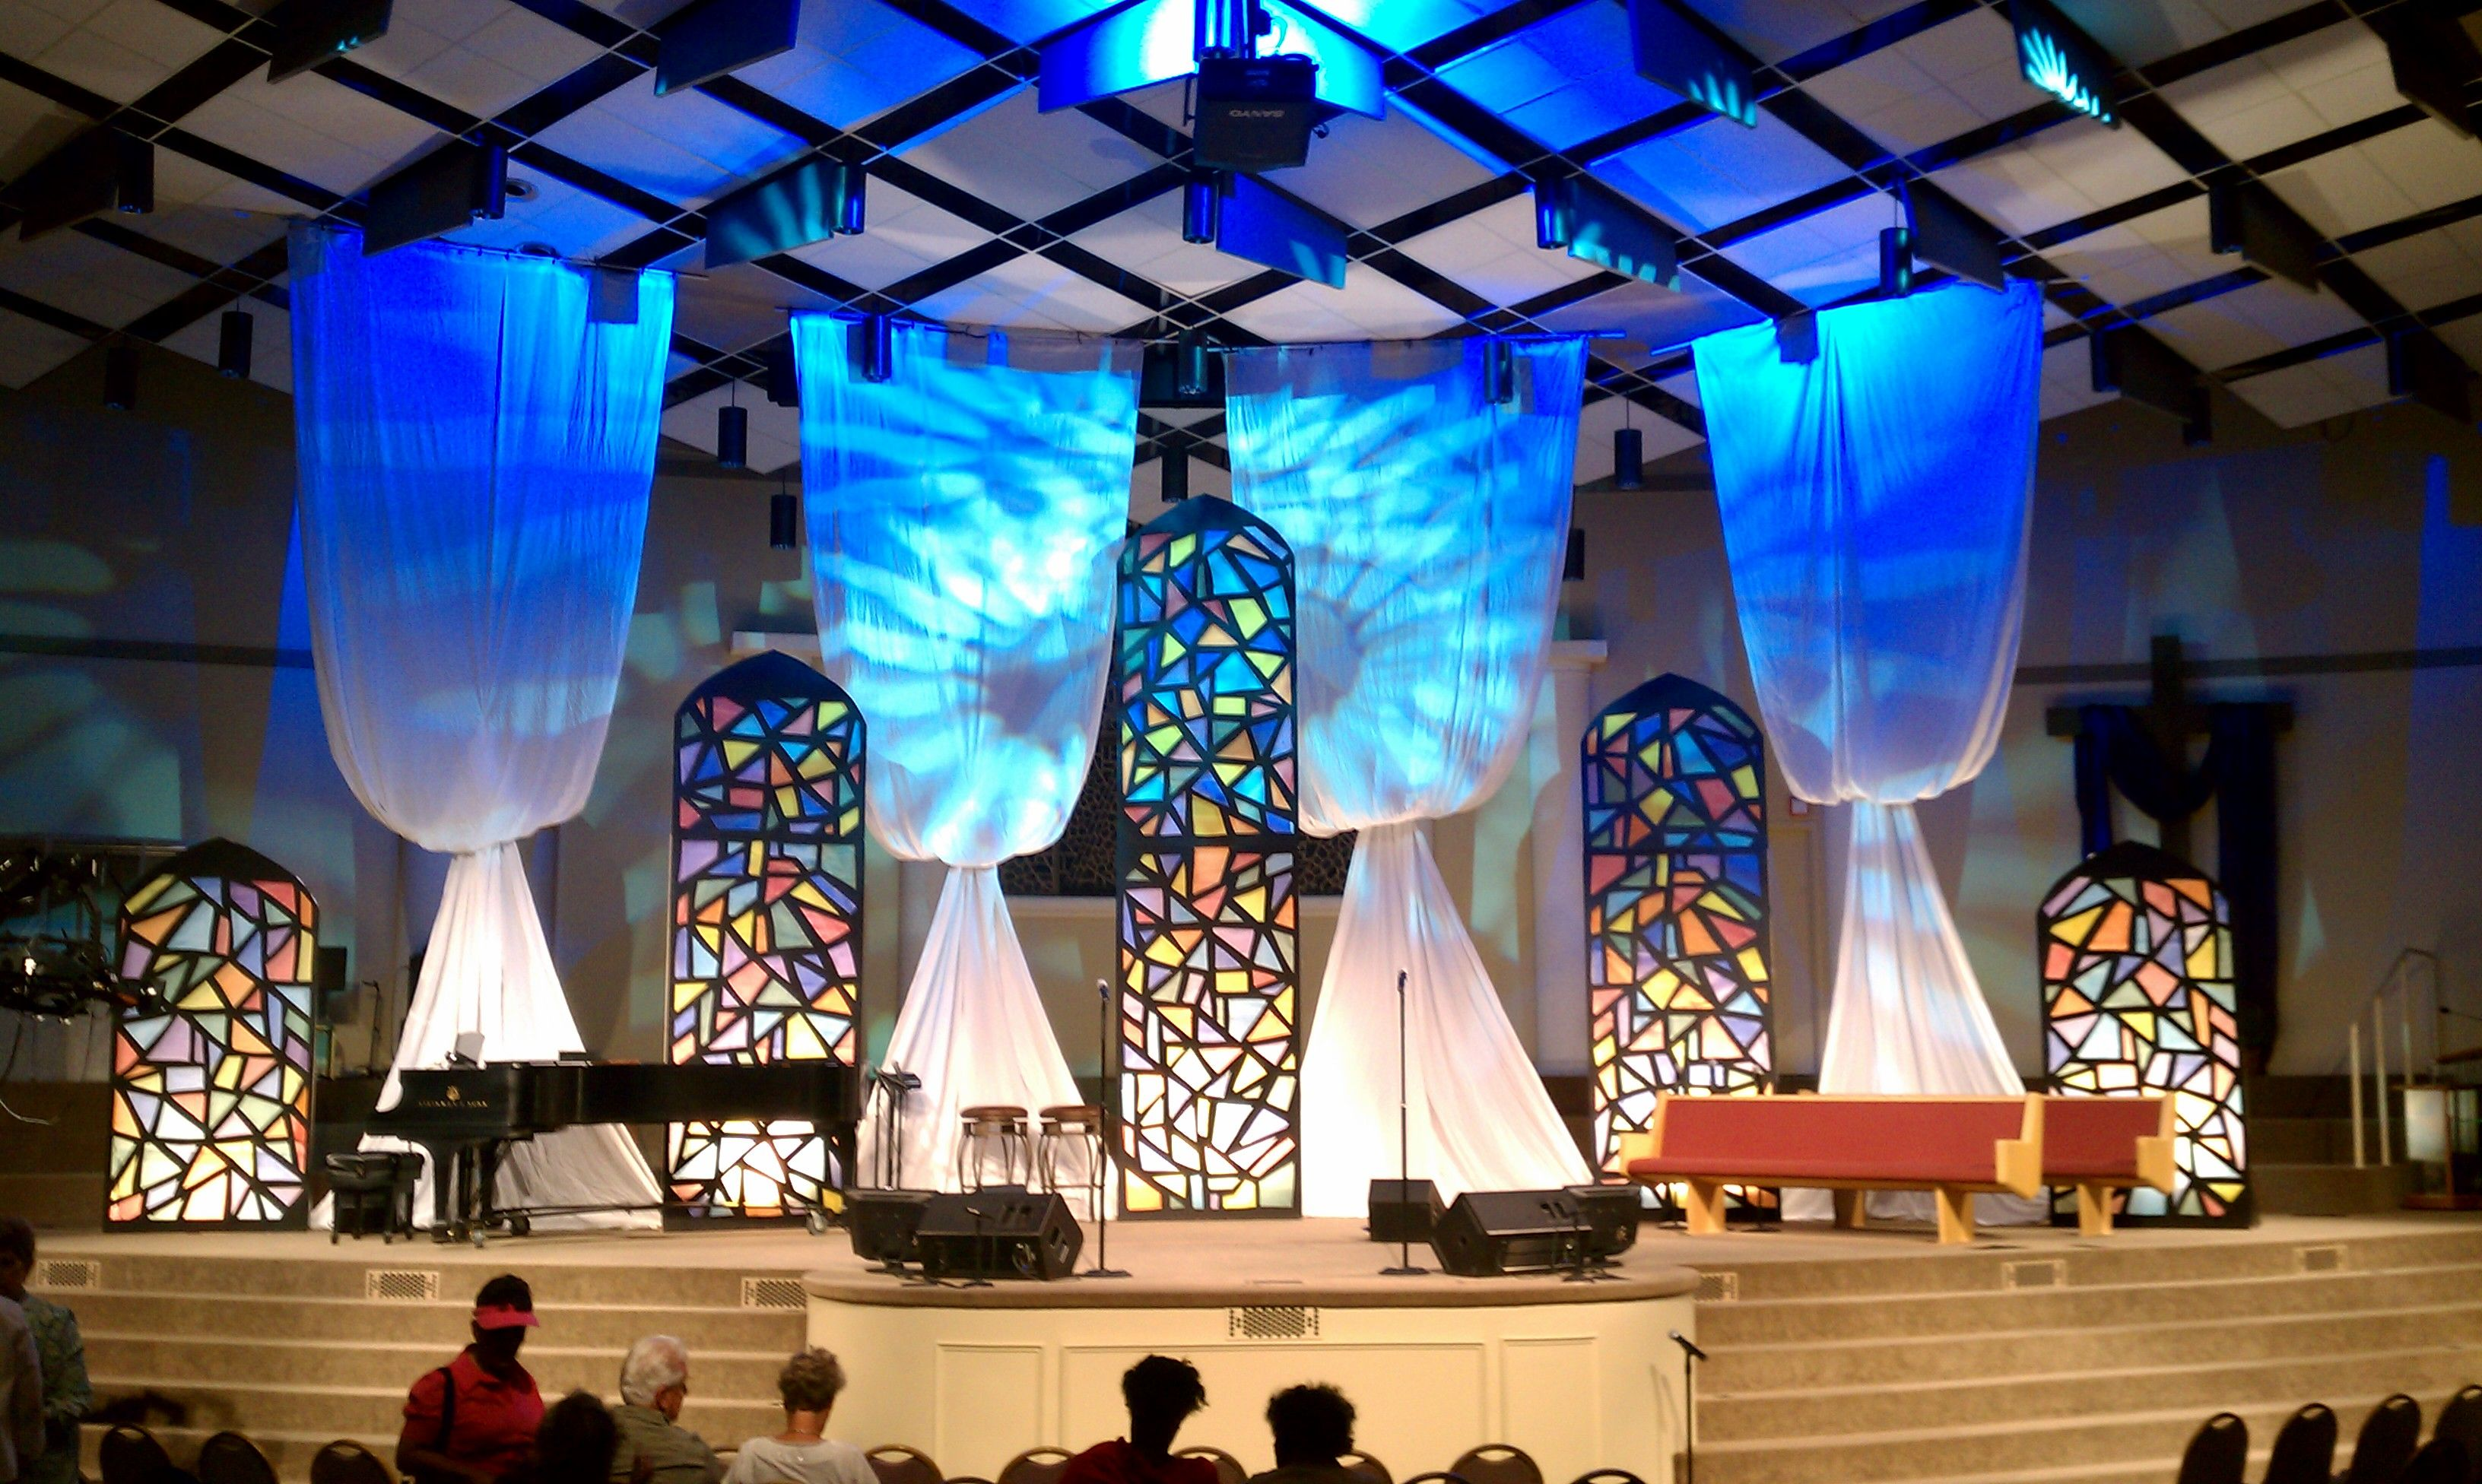 stain gglass stage design stained glass church stage design ideas